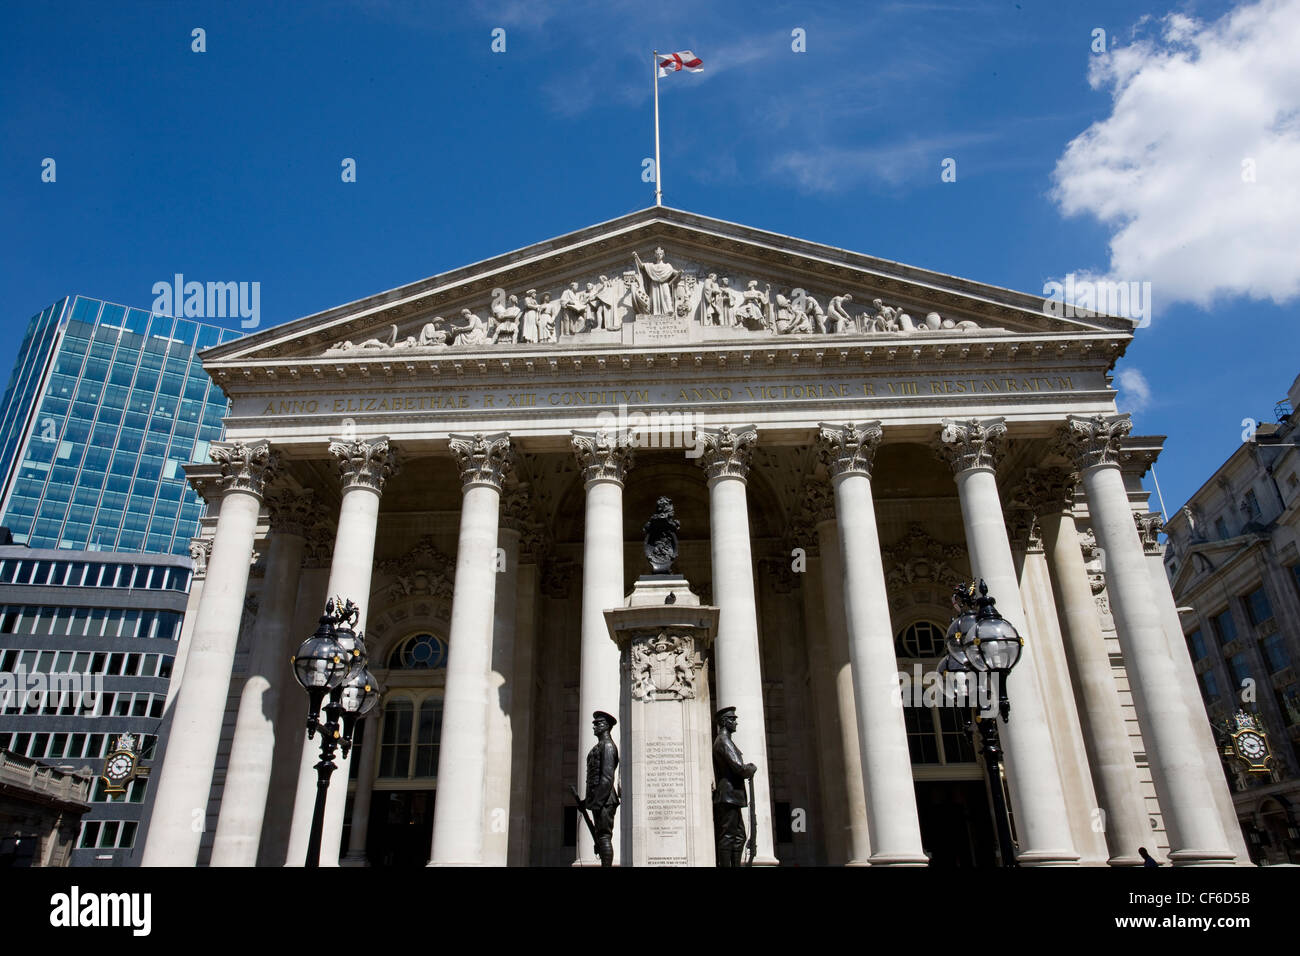 The main entrance of the Royal Exchange, a Grade l listed building, created in 1565 by Sir Thomas Gresham as a place - Stock Image